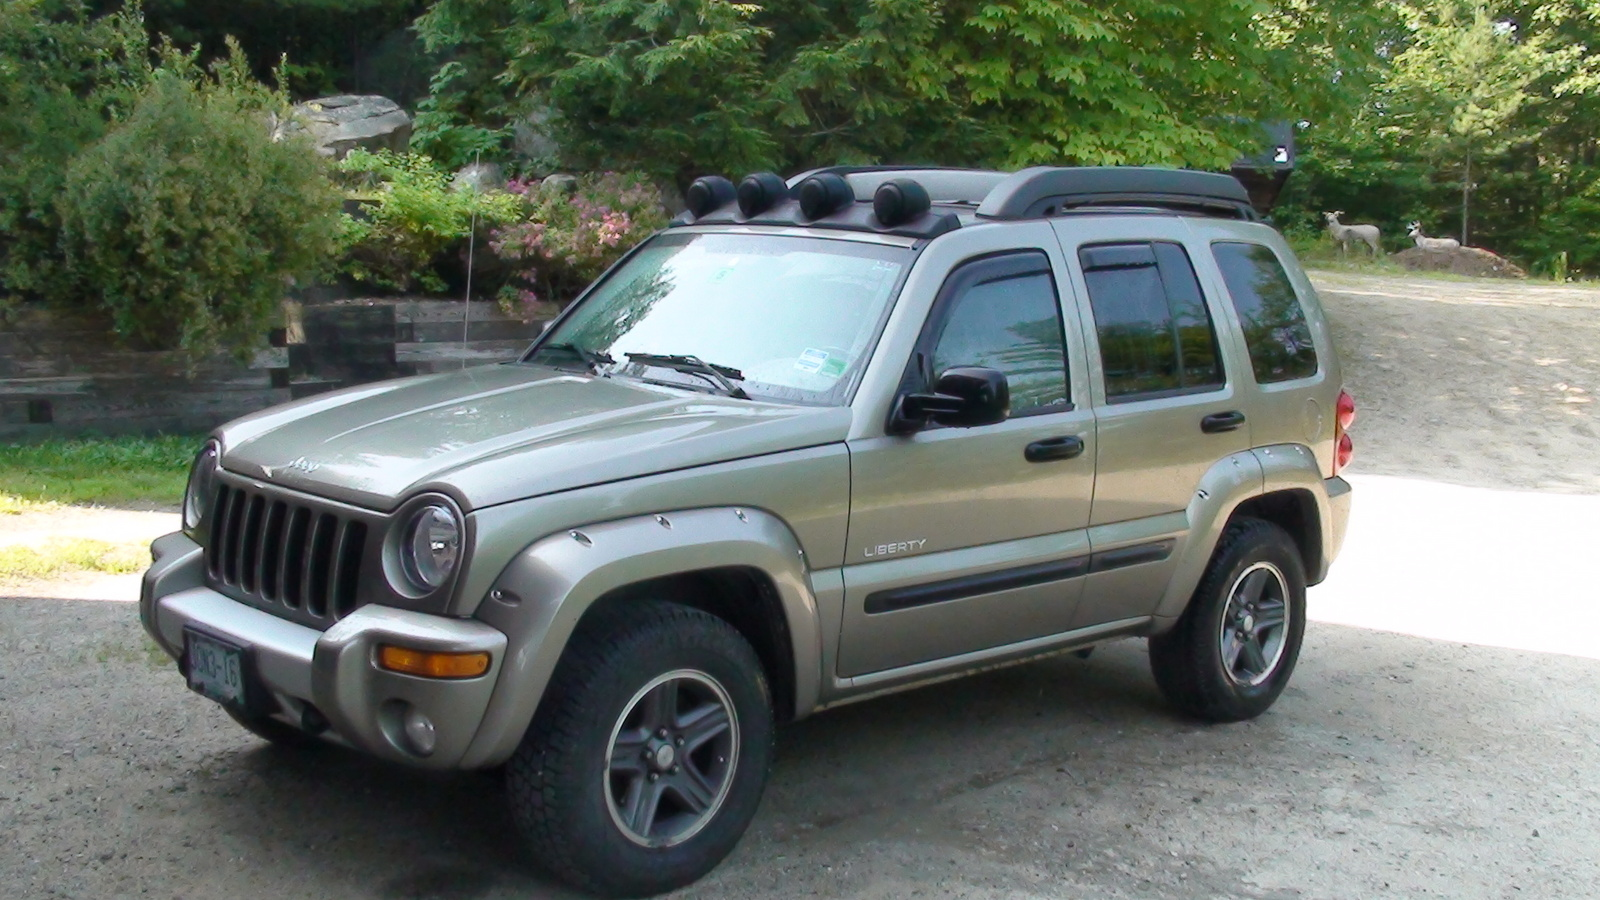 2004 jeep liberty exterior pictures cargurus. Black Bedroom Furniture Sets. Home Design Ideas